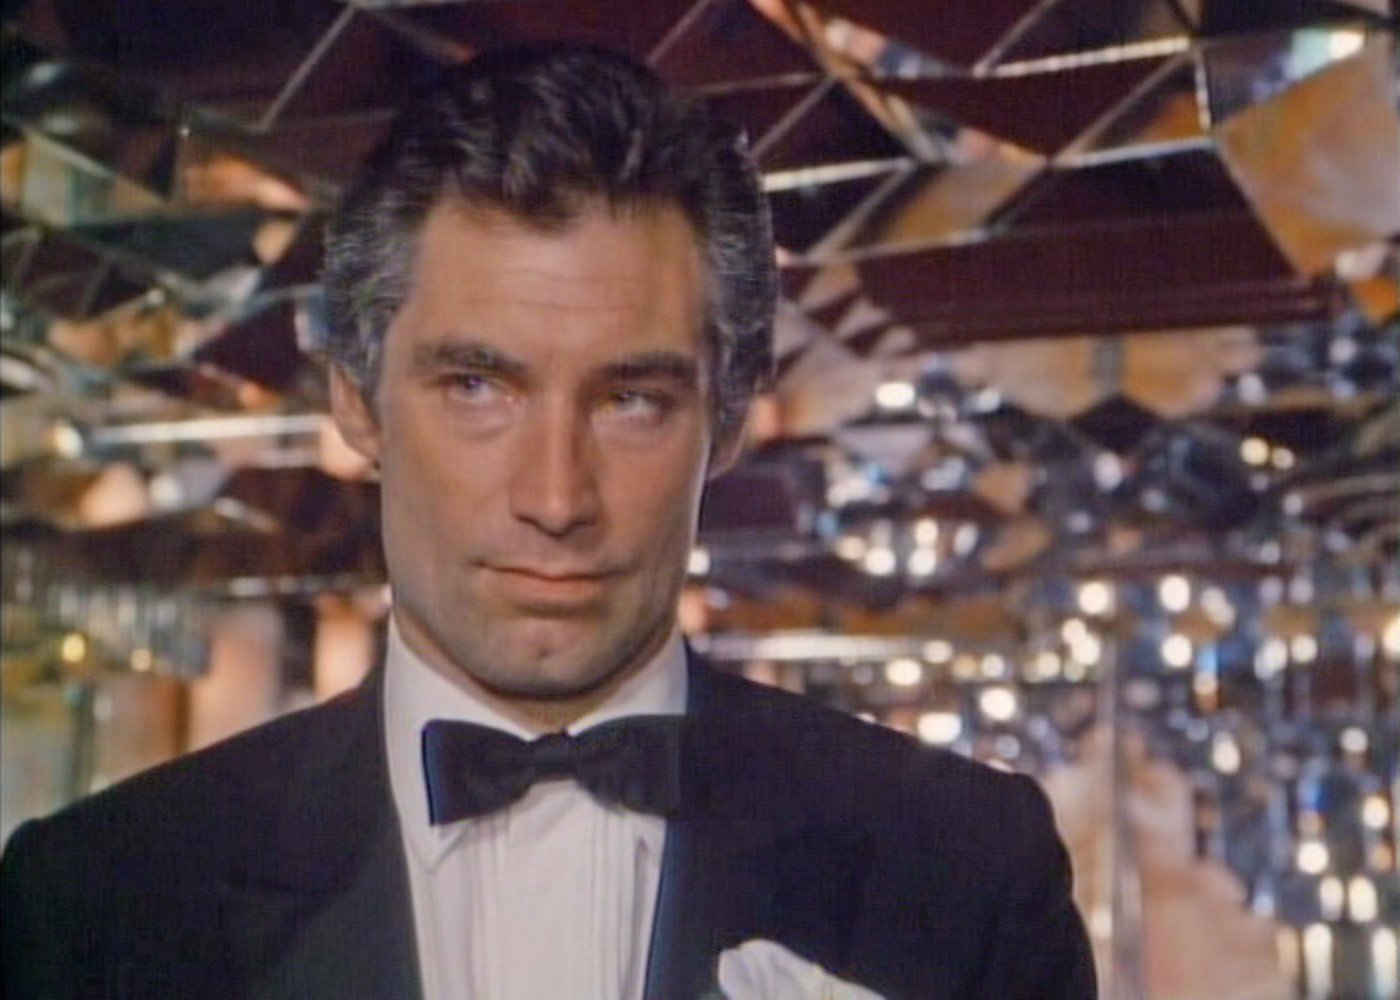 Sins: Timothy Dalton in Black and White Dinner Jackets ...